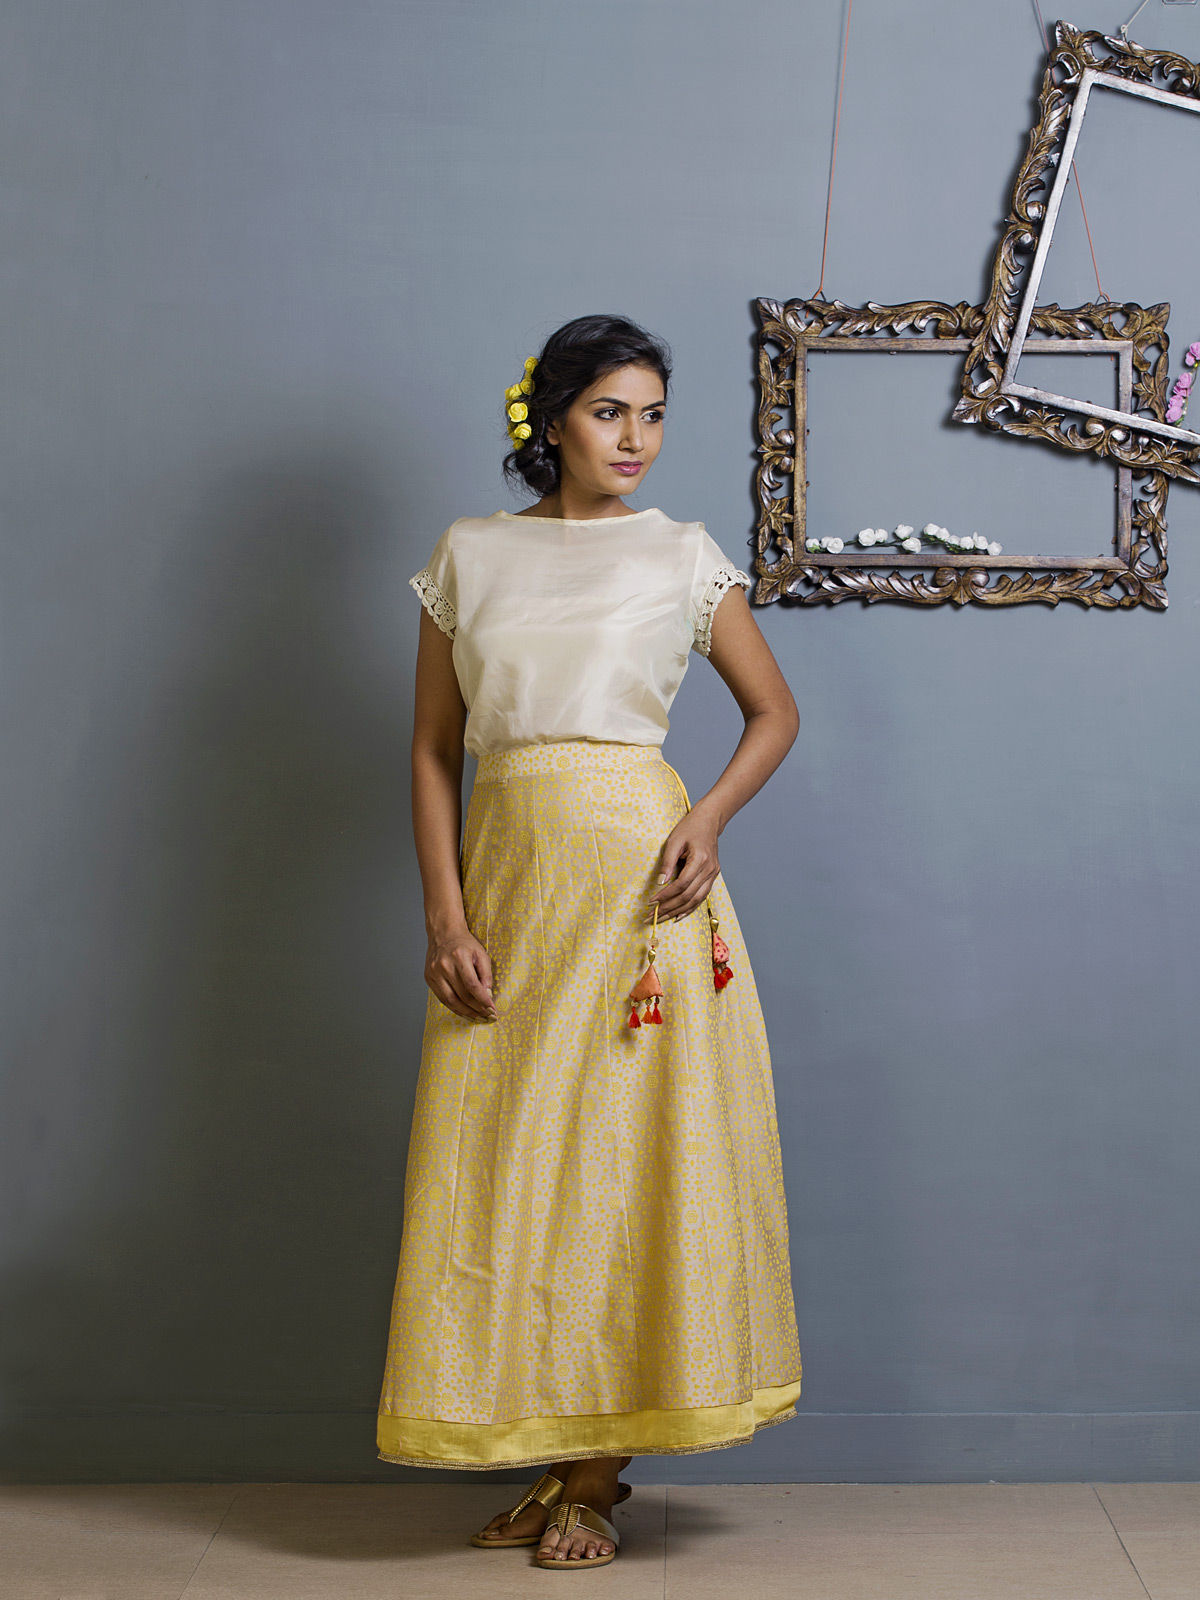 Pale Yellow Layered Chanderi Ehtnic Skirt